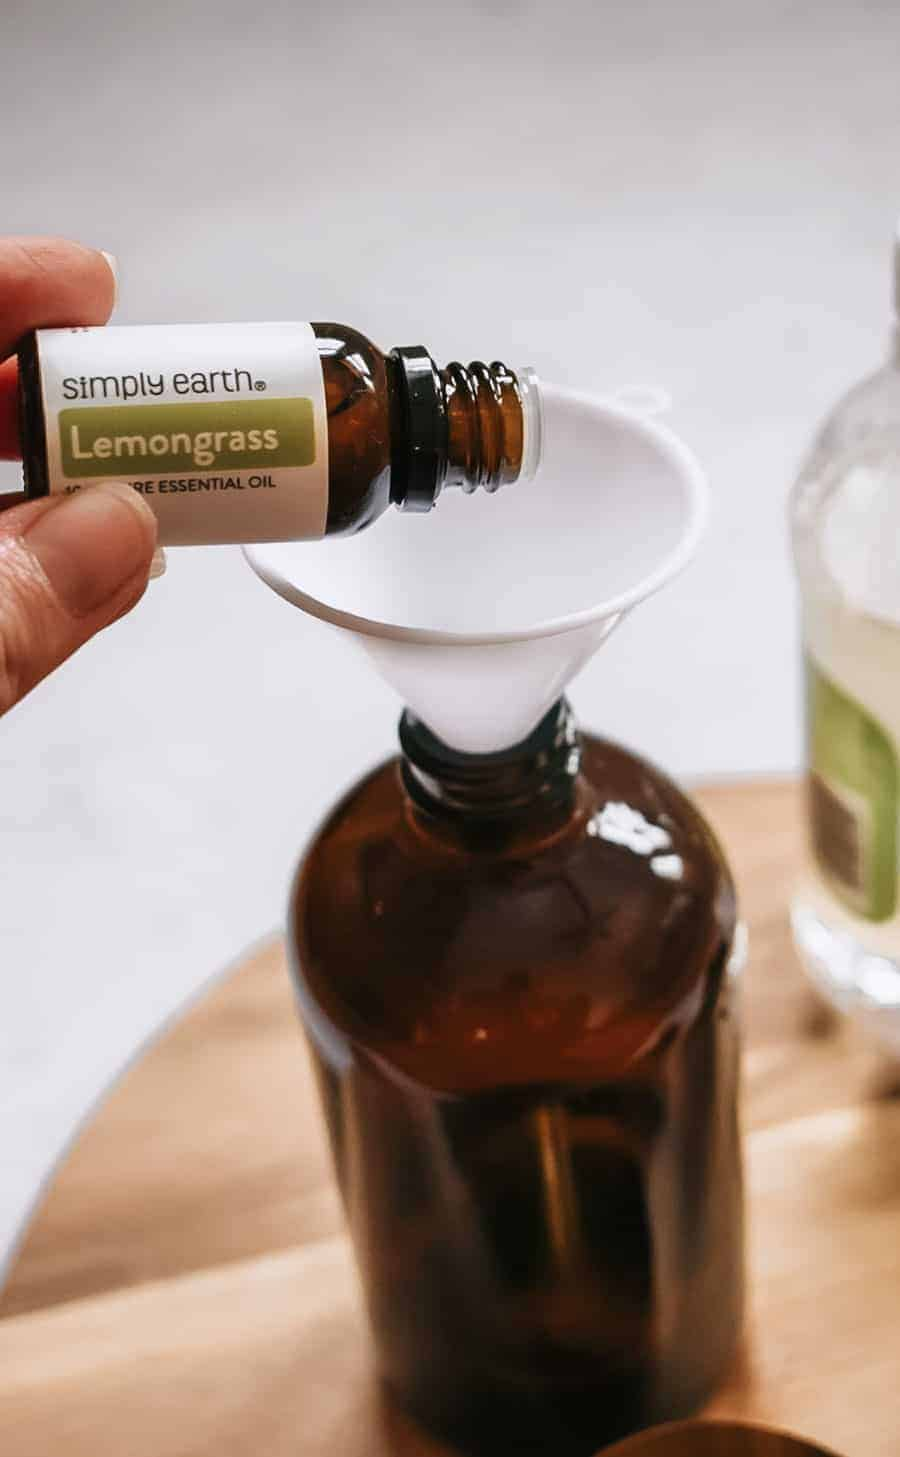 Person pouring lemongrass essential oil into brown glass bottle